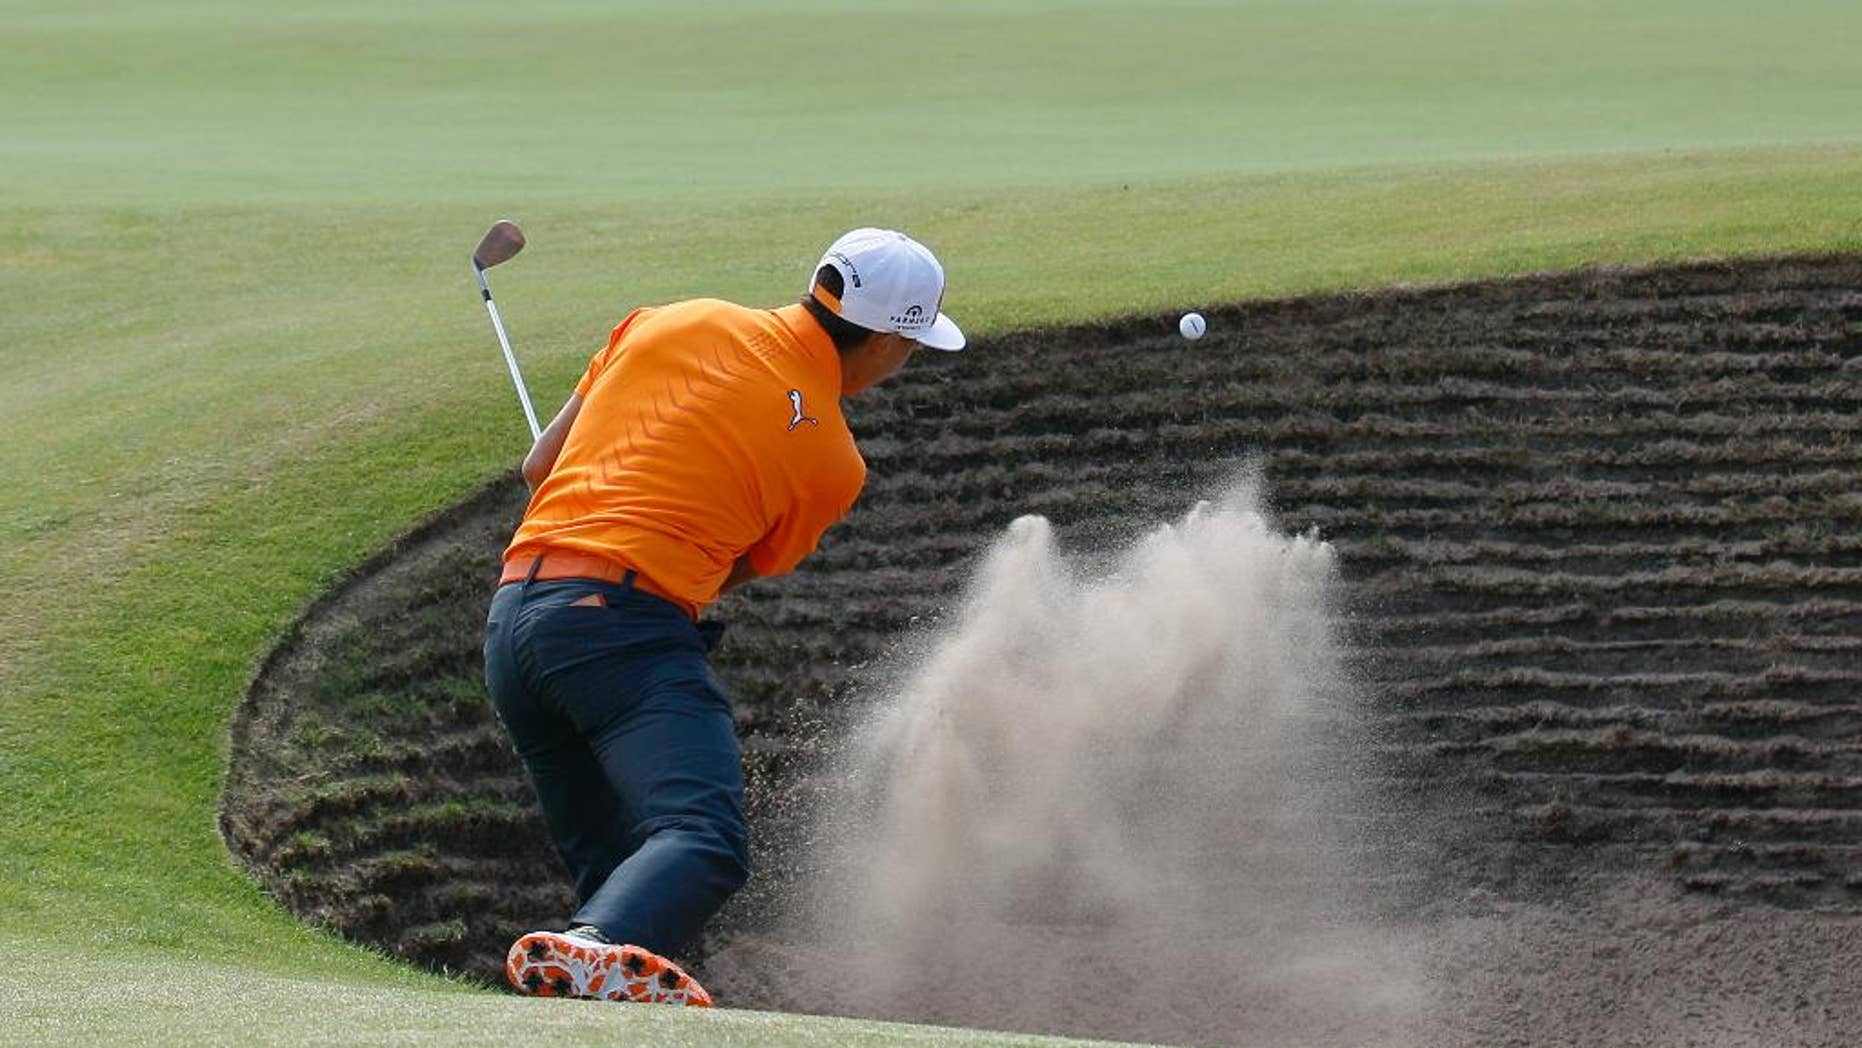 Rickie Fowler of the US plays out of a bunker on the 6th green during the final round of the British Open Golf championship at the Royal Liverpool golf club, Hoylake, England, Sunday July 20, 2014. (AP Photo/Peter Morrison)